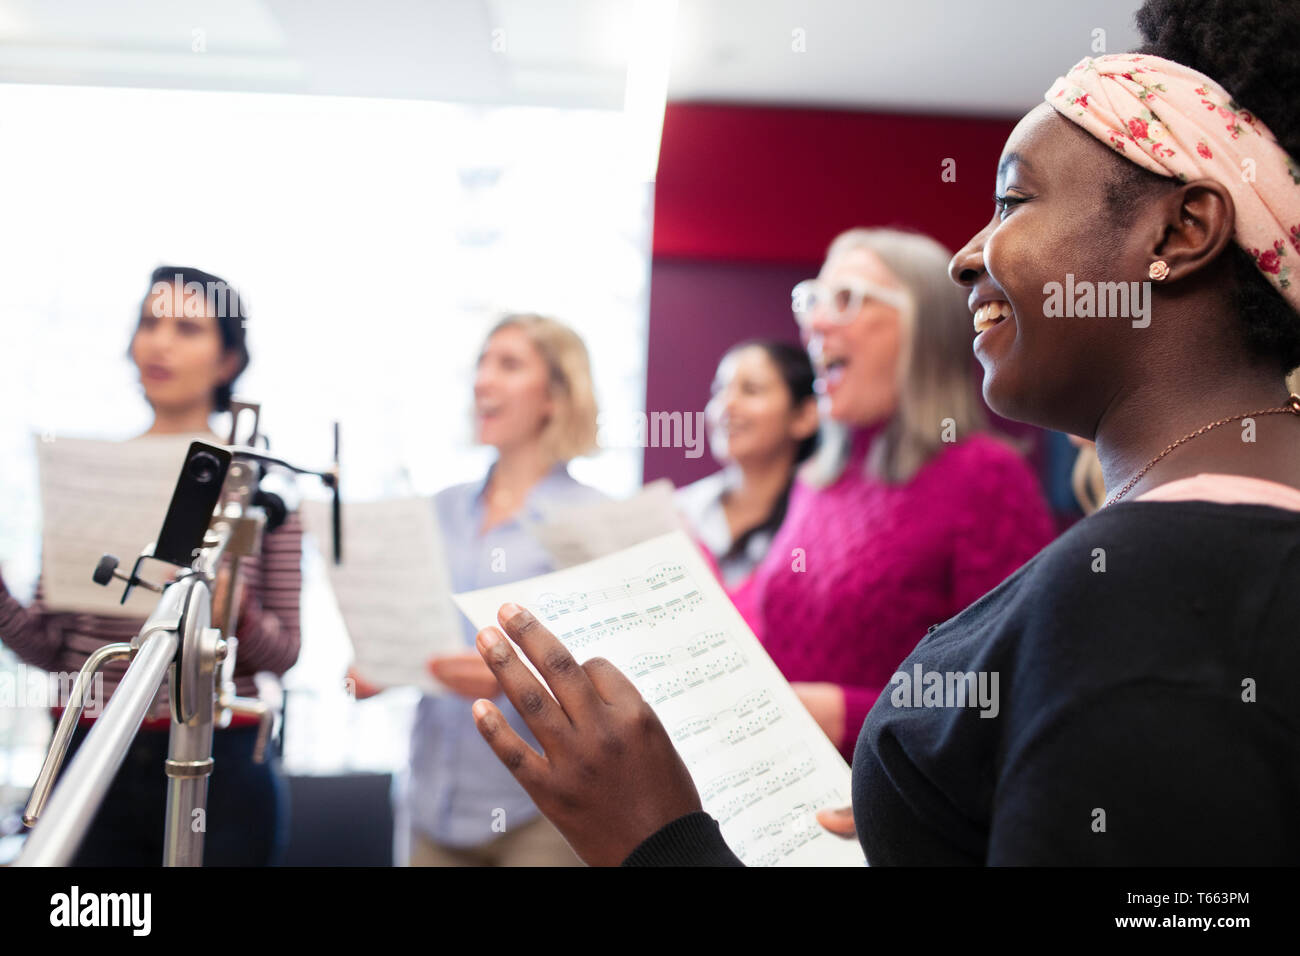 Frauen Chor mit Noten singen in Music Recording Studio Stockfoto